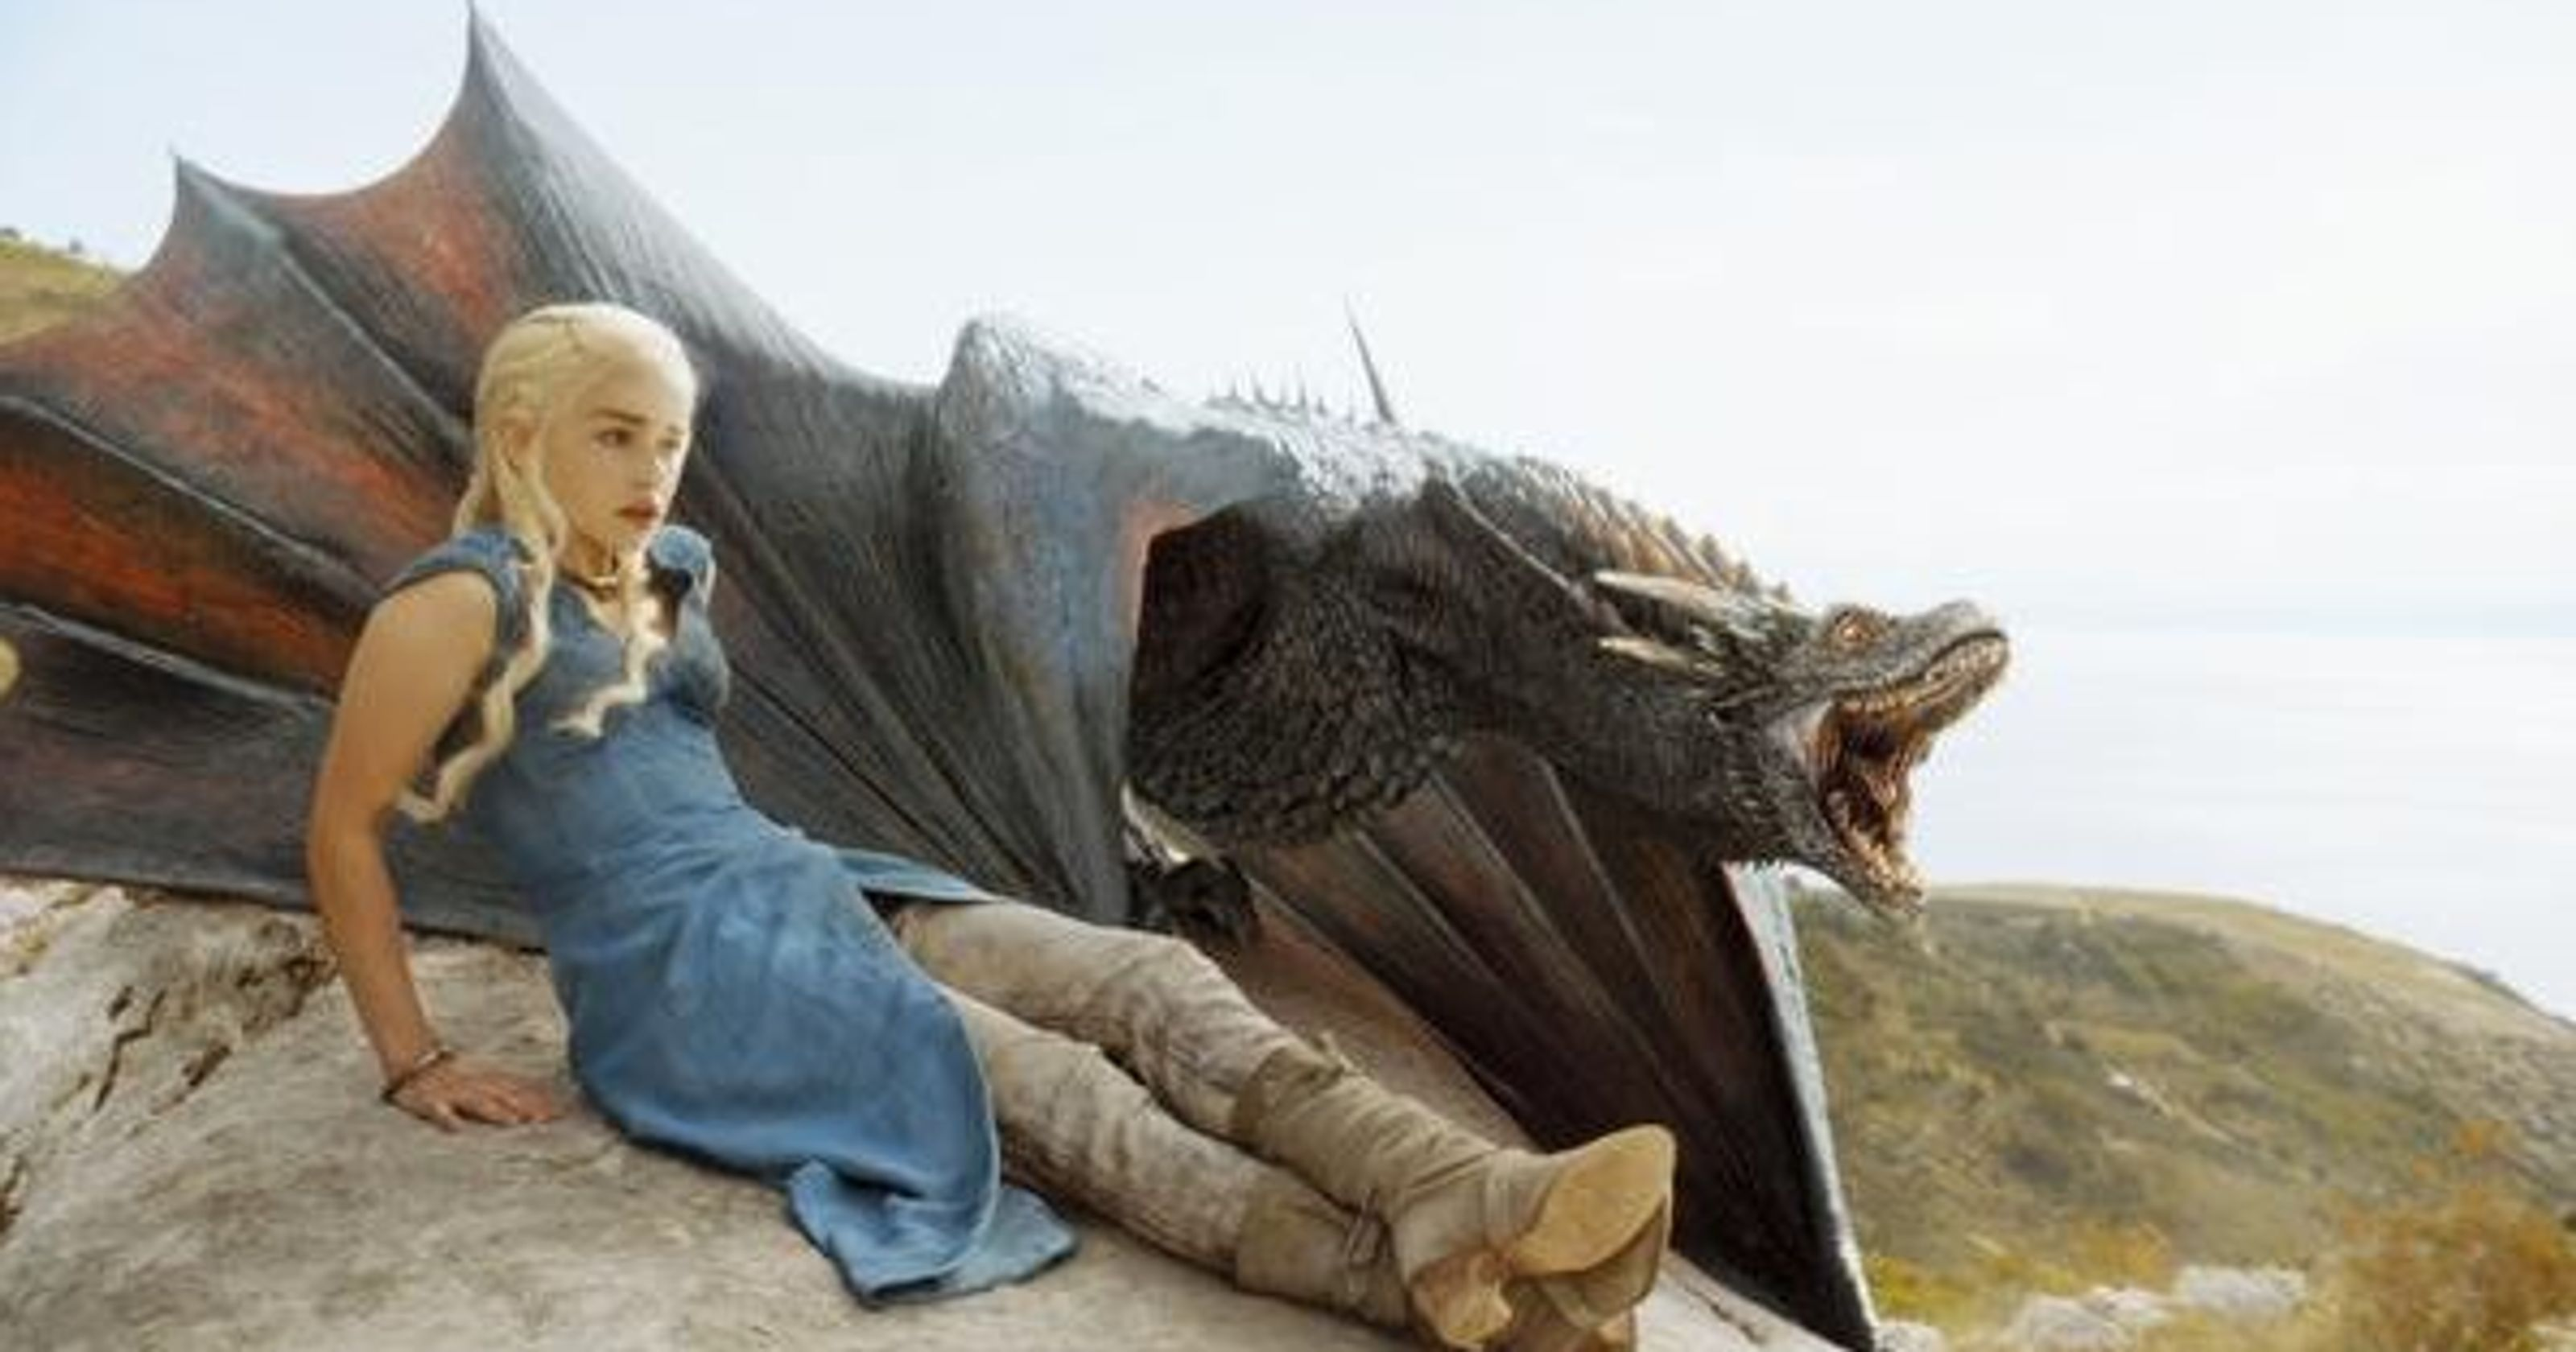 dragon game of thrones image